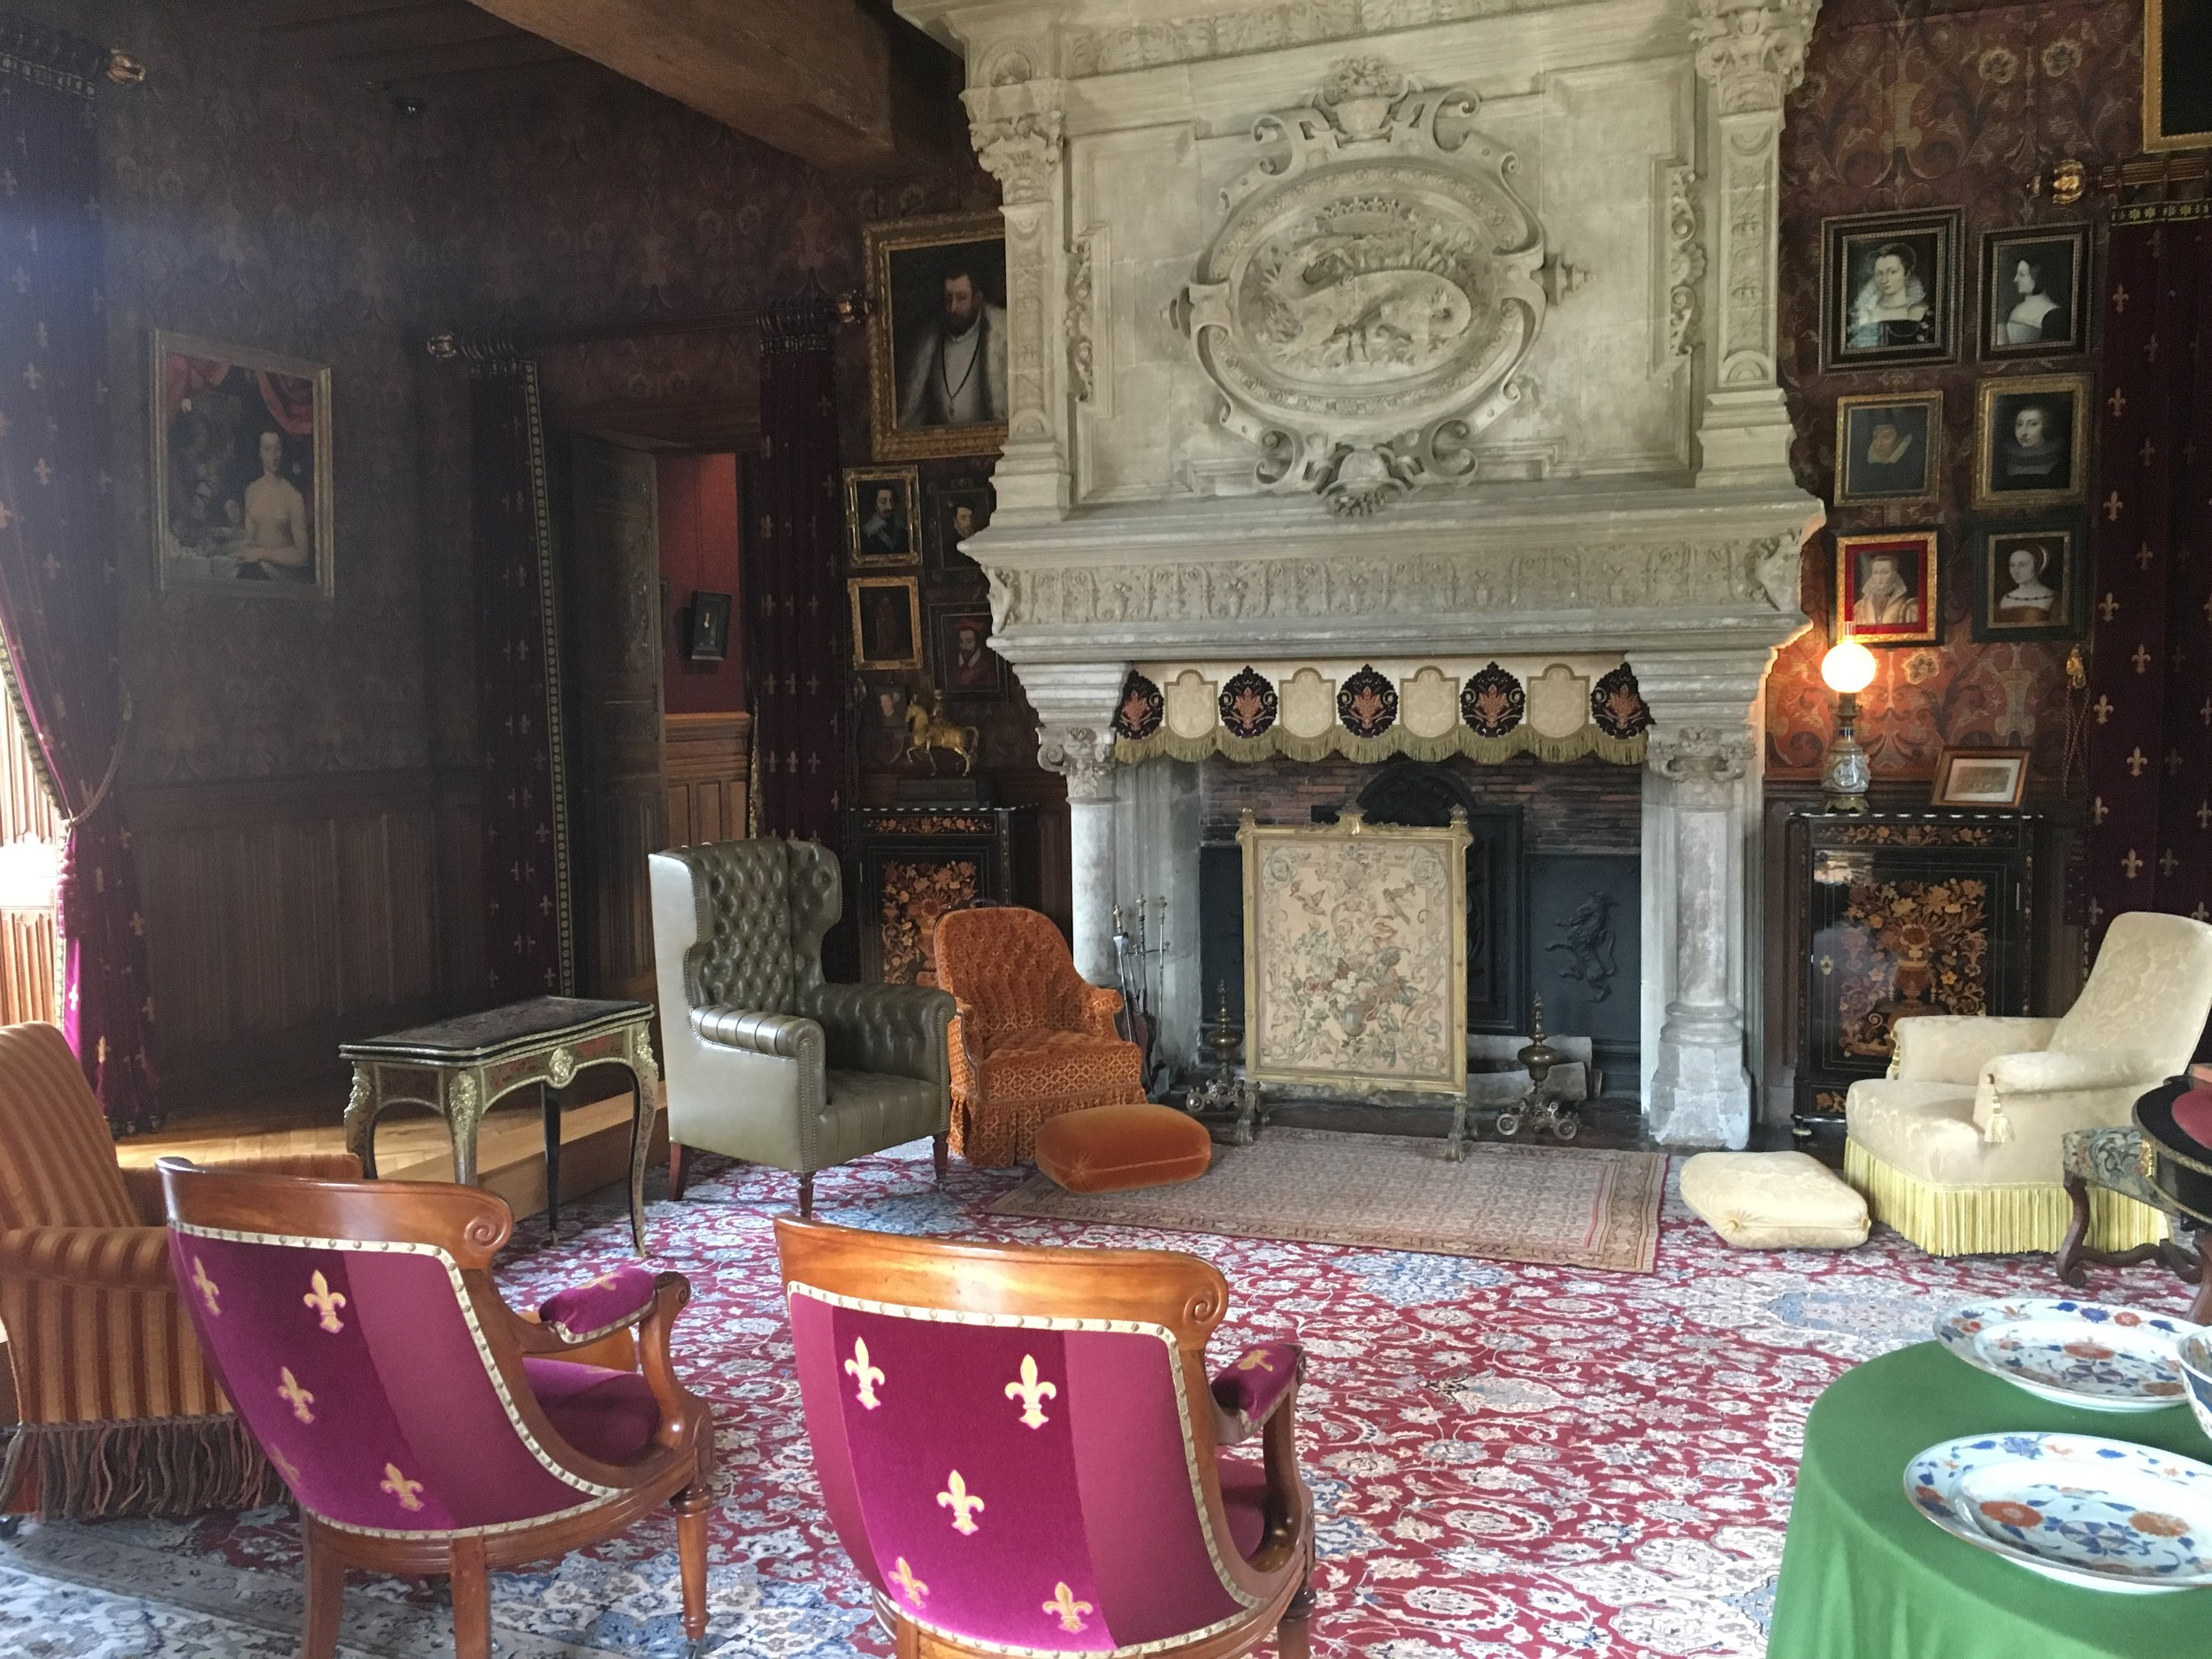 Interior at Château de Langeais